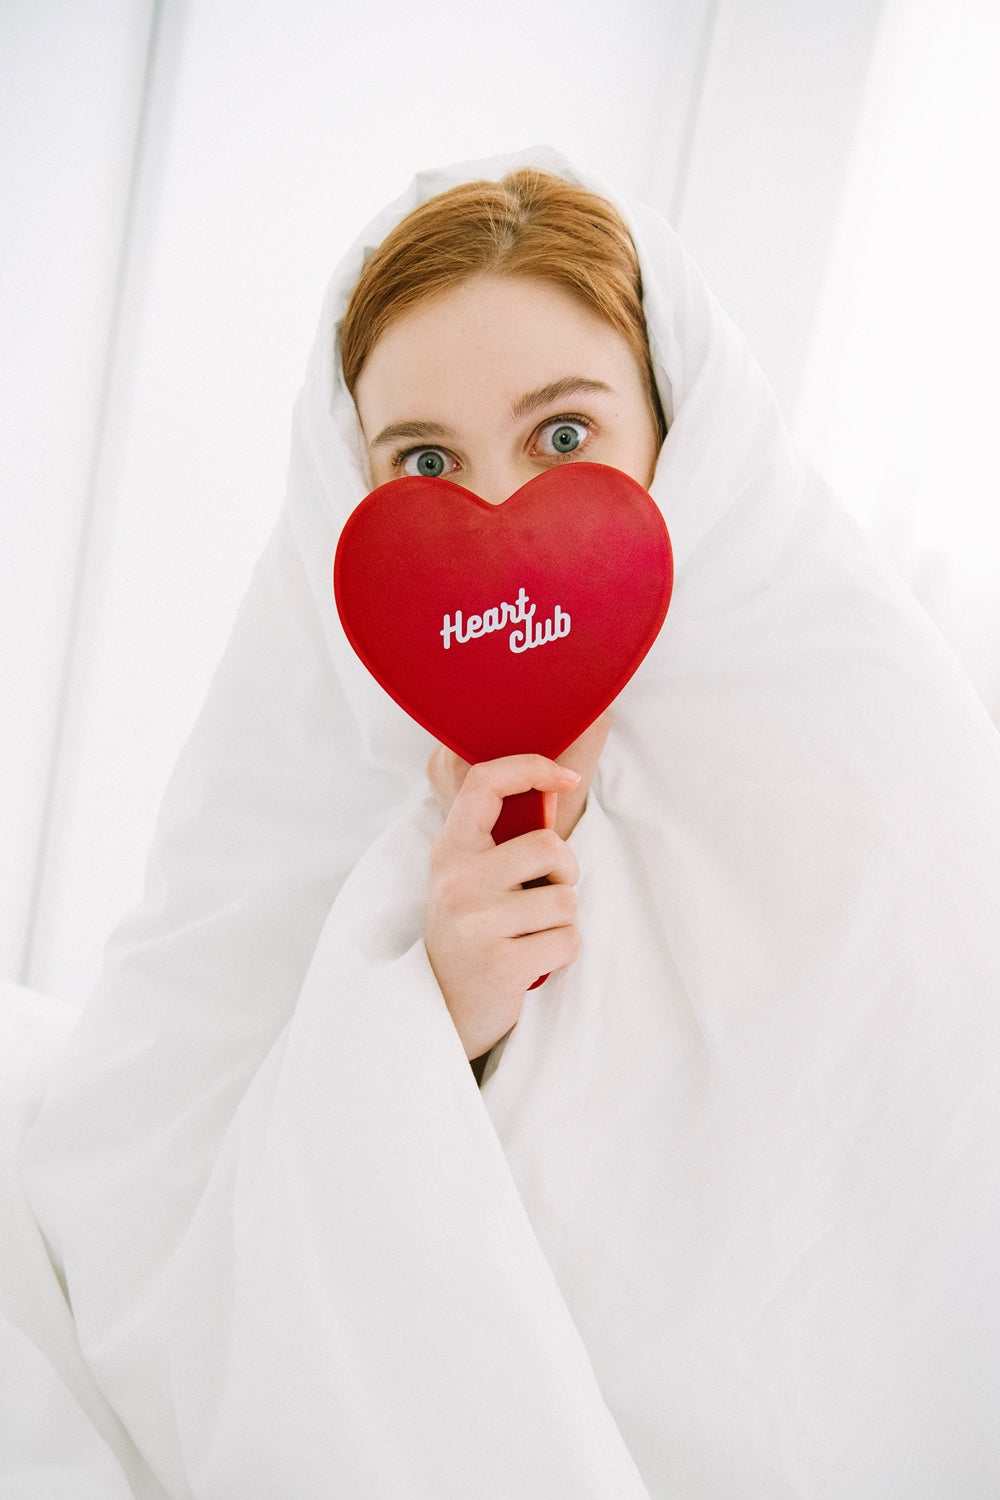 HEART CLUB Heart-Shaped Hand Mirror